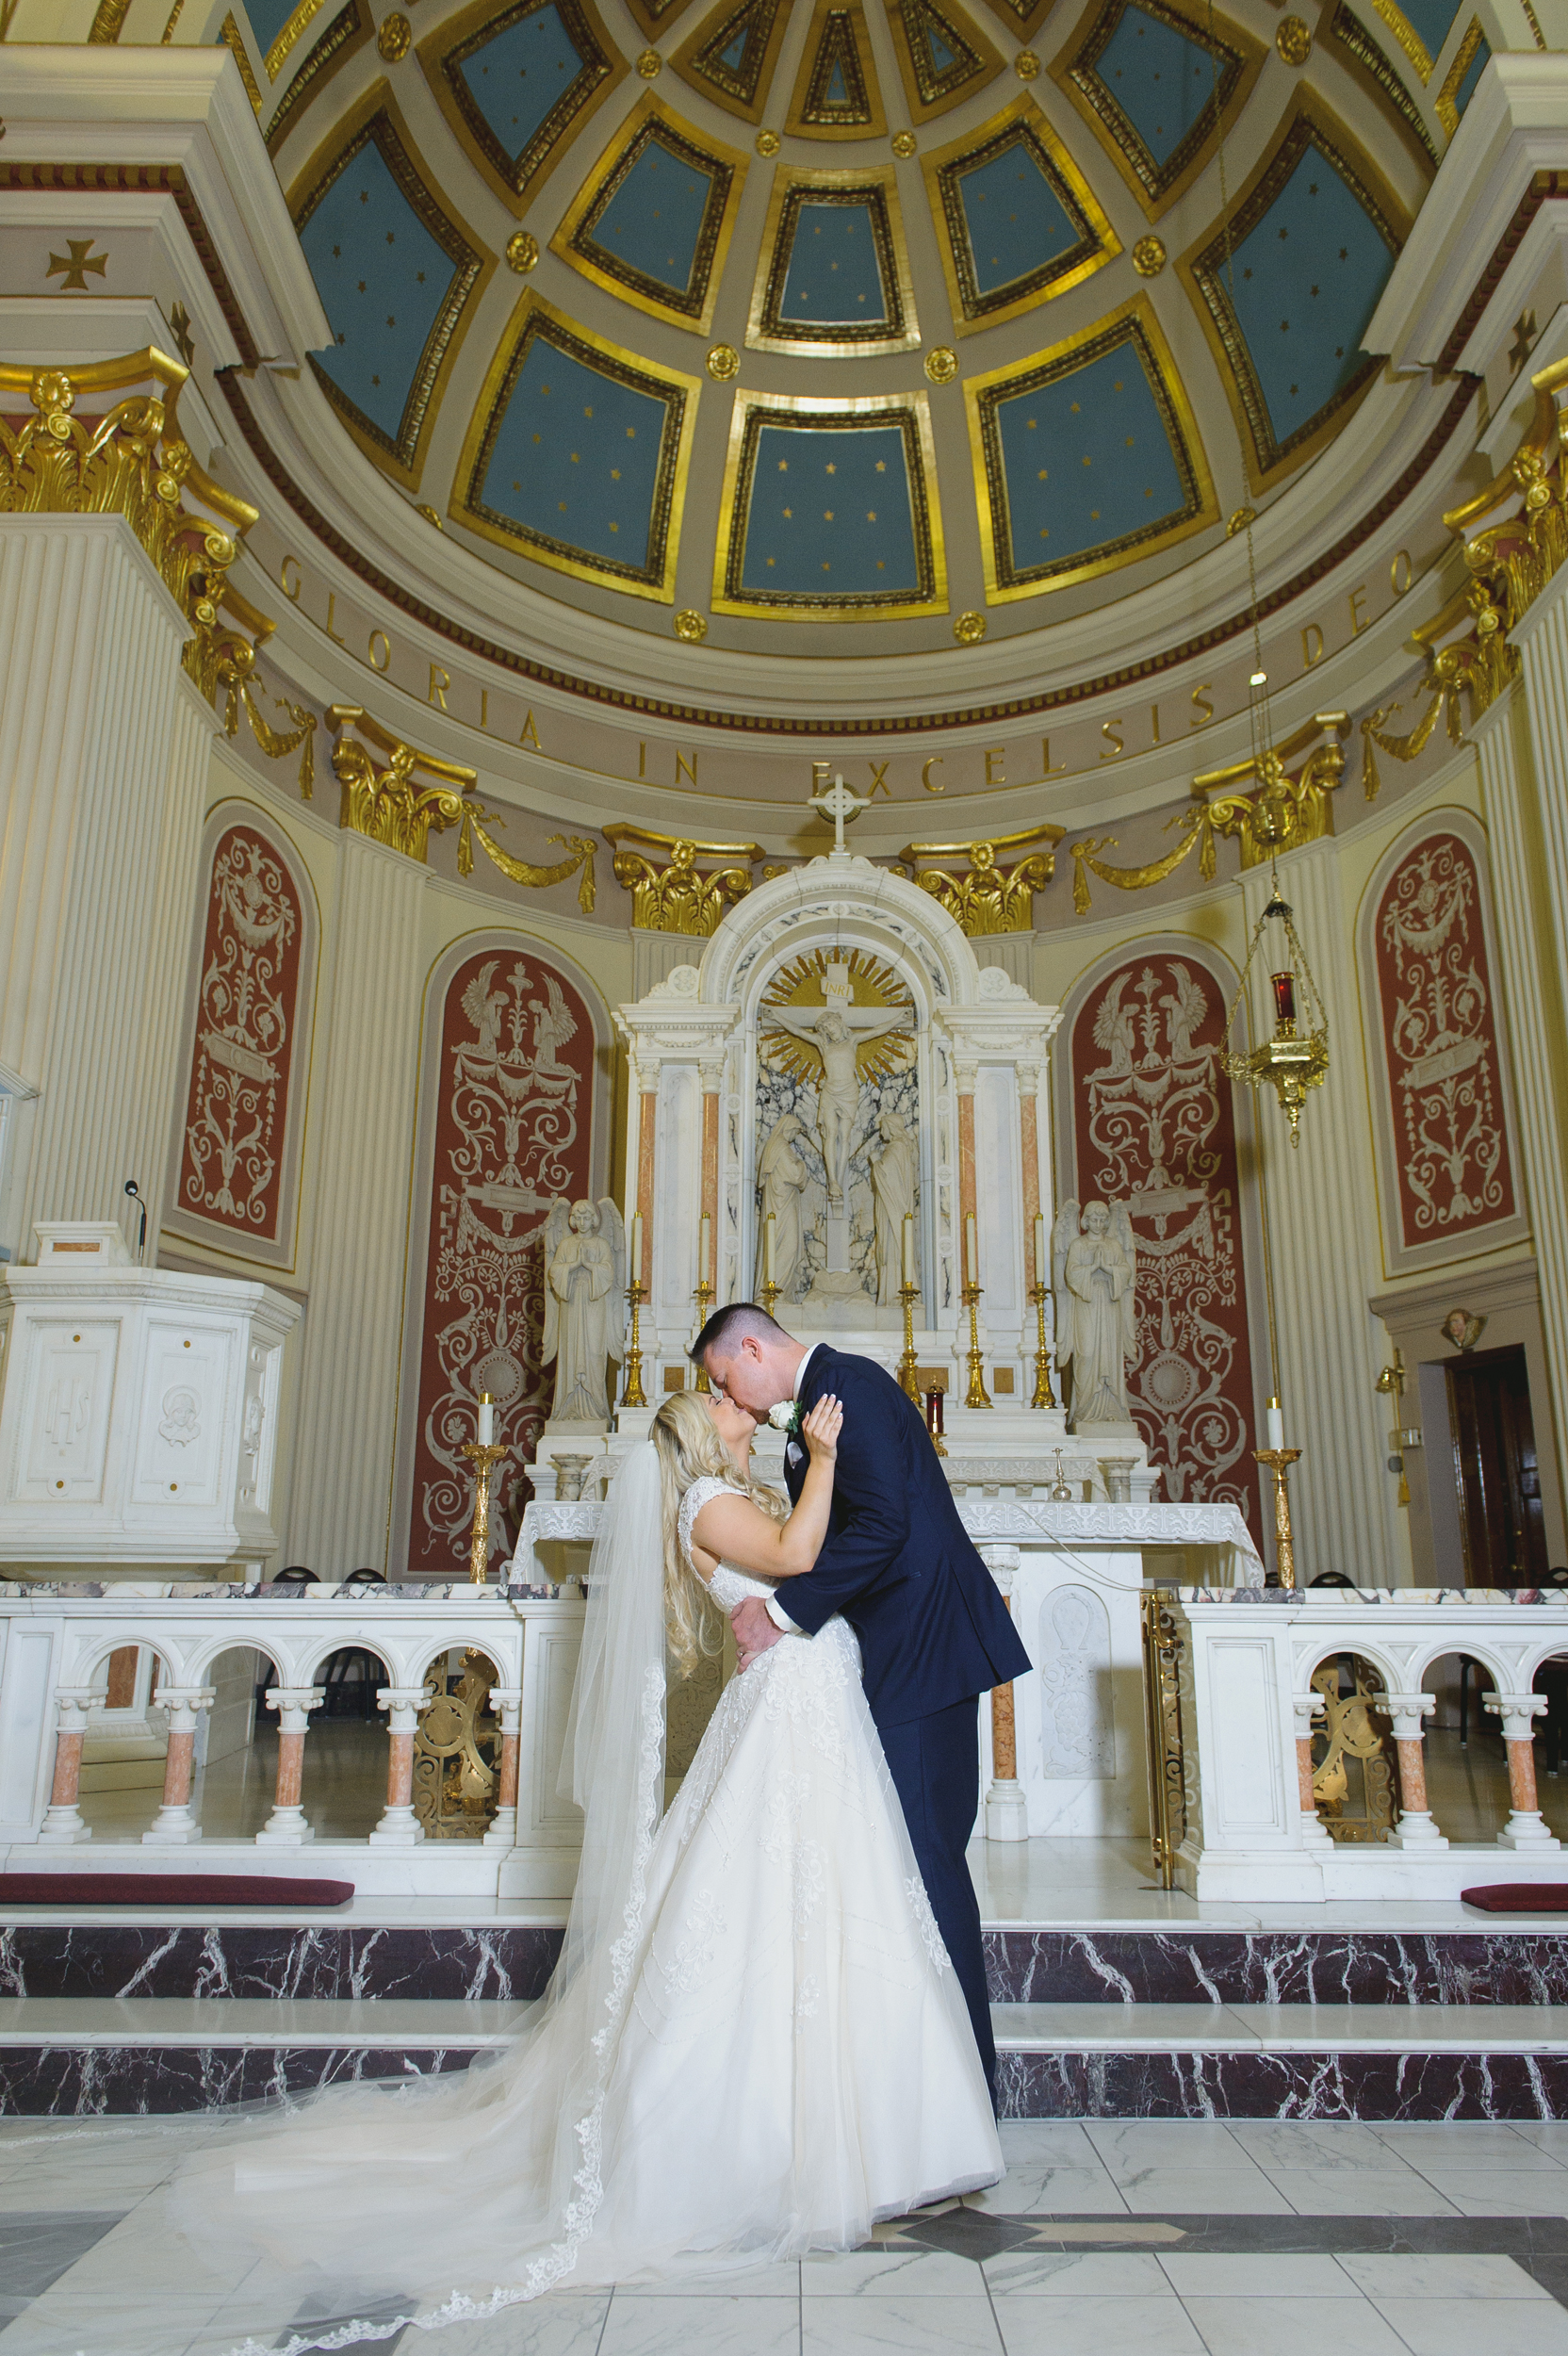 Groom kisses the bride - Pearl Weddings and Events